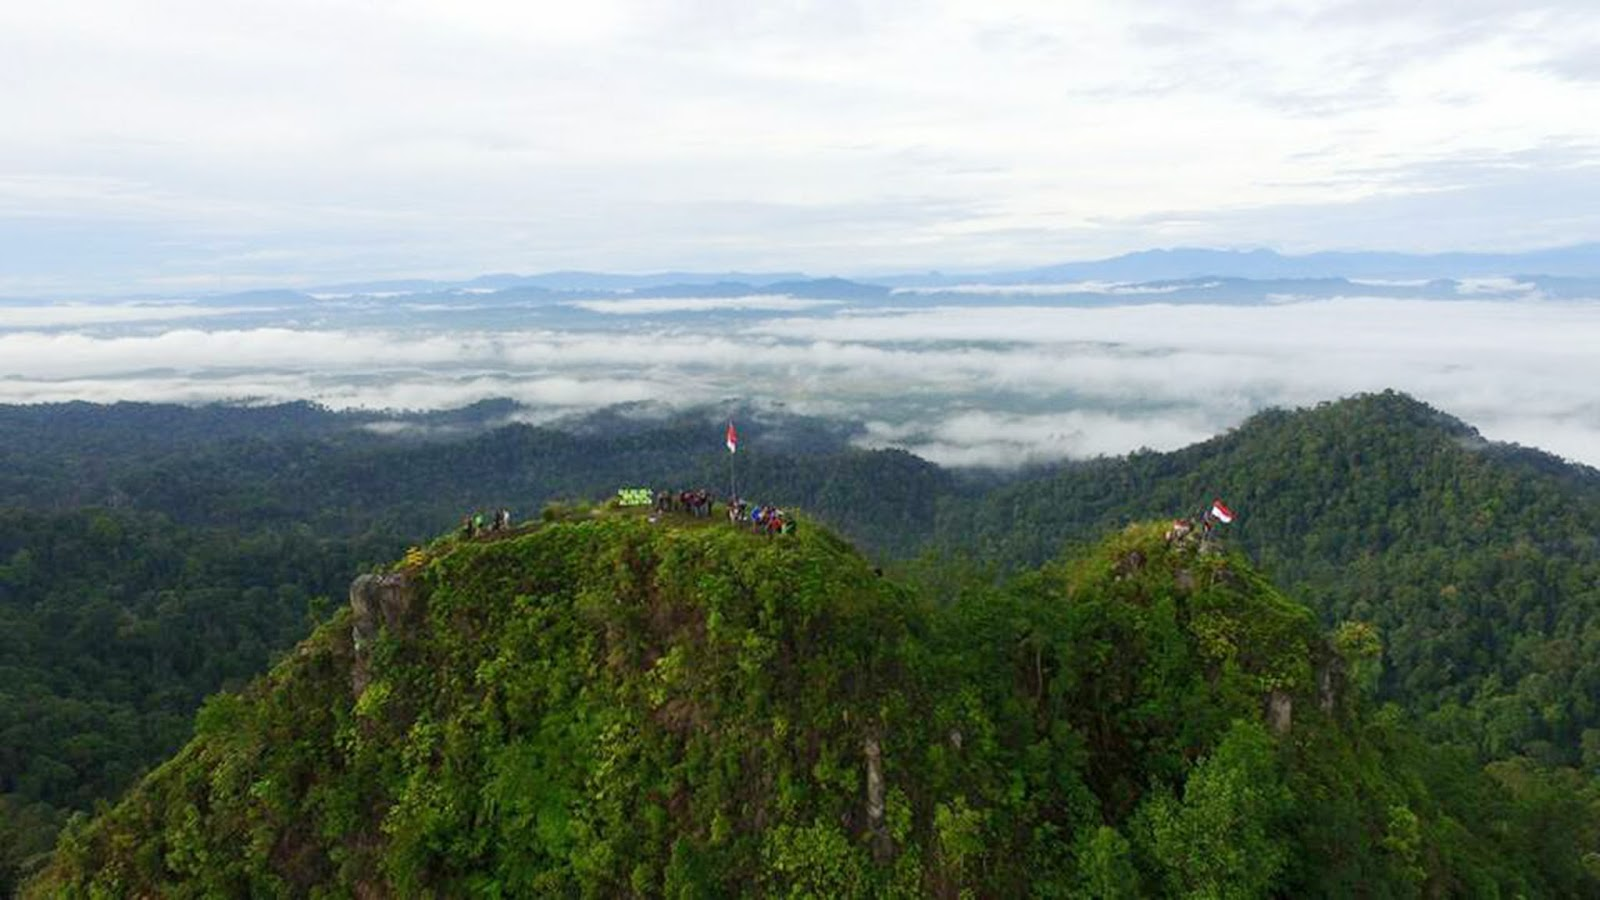 The Bukit Suligi is located in Aliantan Village, Kabun District, Rokan Hulu Regency, Riau. Riau Province designated it as a new tourist destination area and designed for special interest. Namely, those who are ready to cross the road uphill, through the bushes, and rubber plantations.